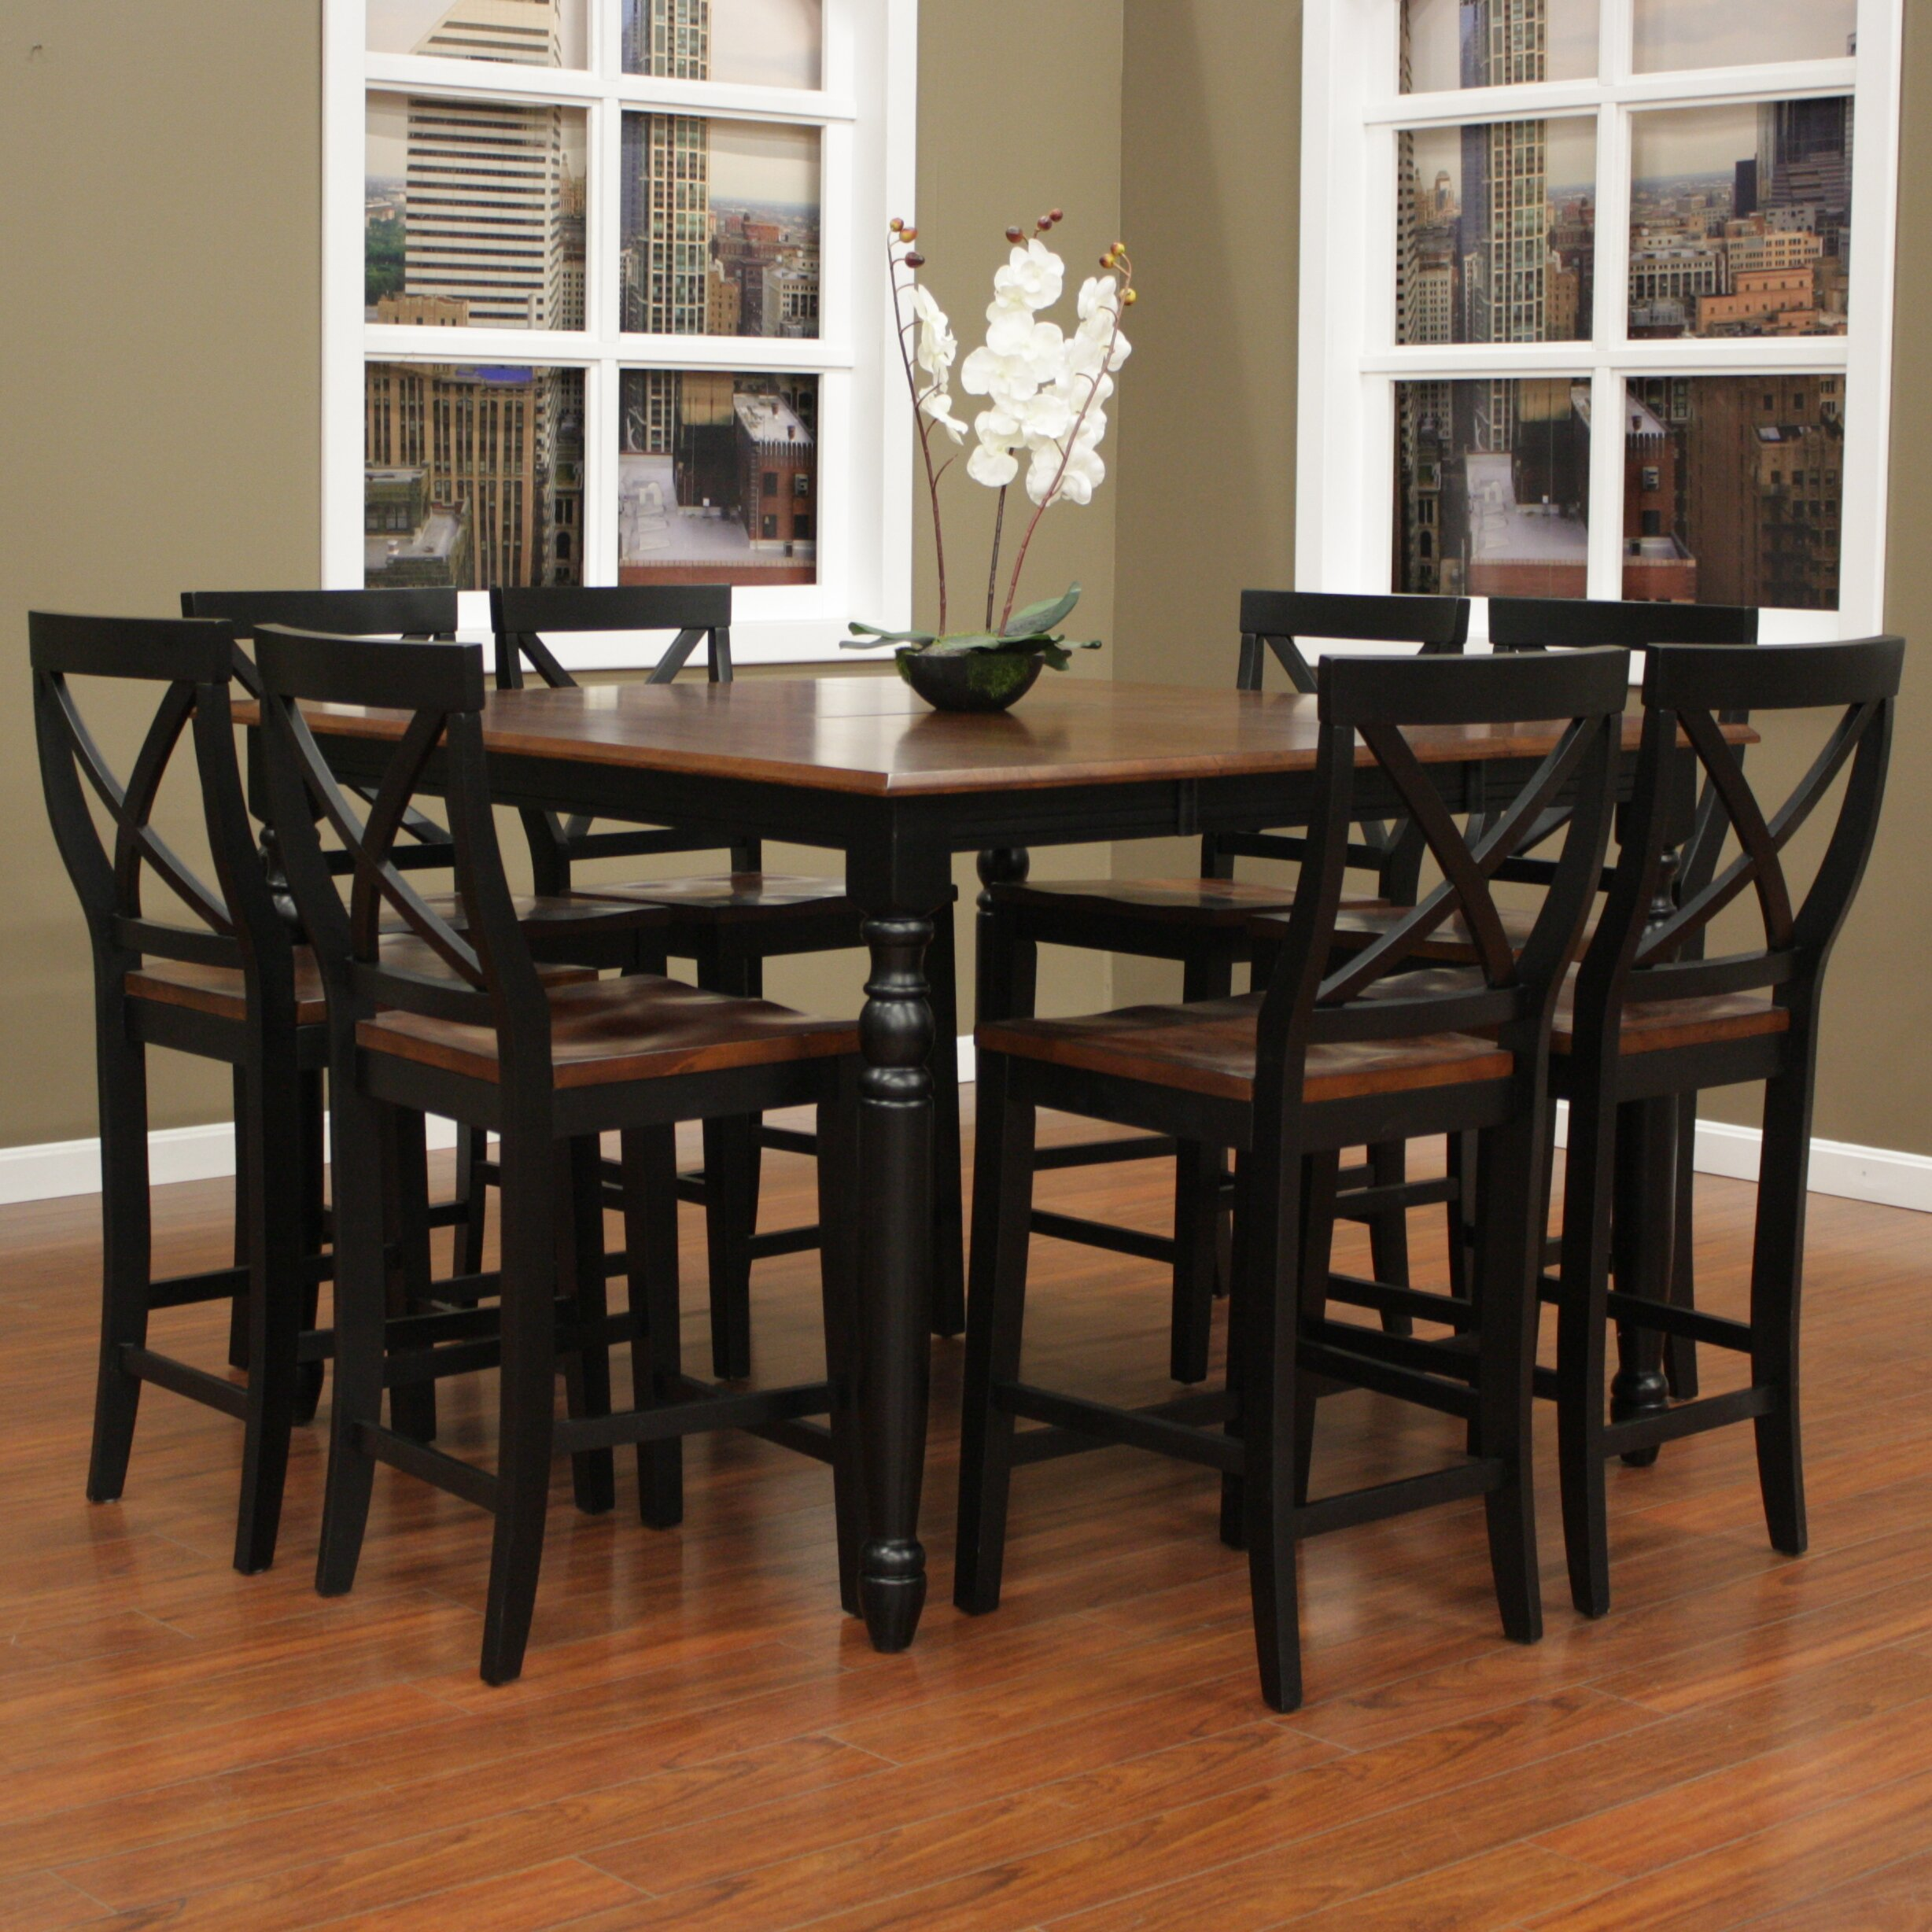 Dining Room Set Counter Height: August Grove Deer Lodge 9 Piece Counter Height Dining Set